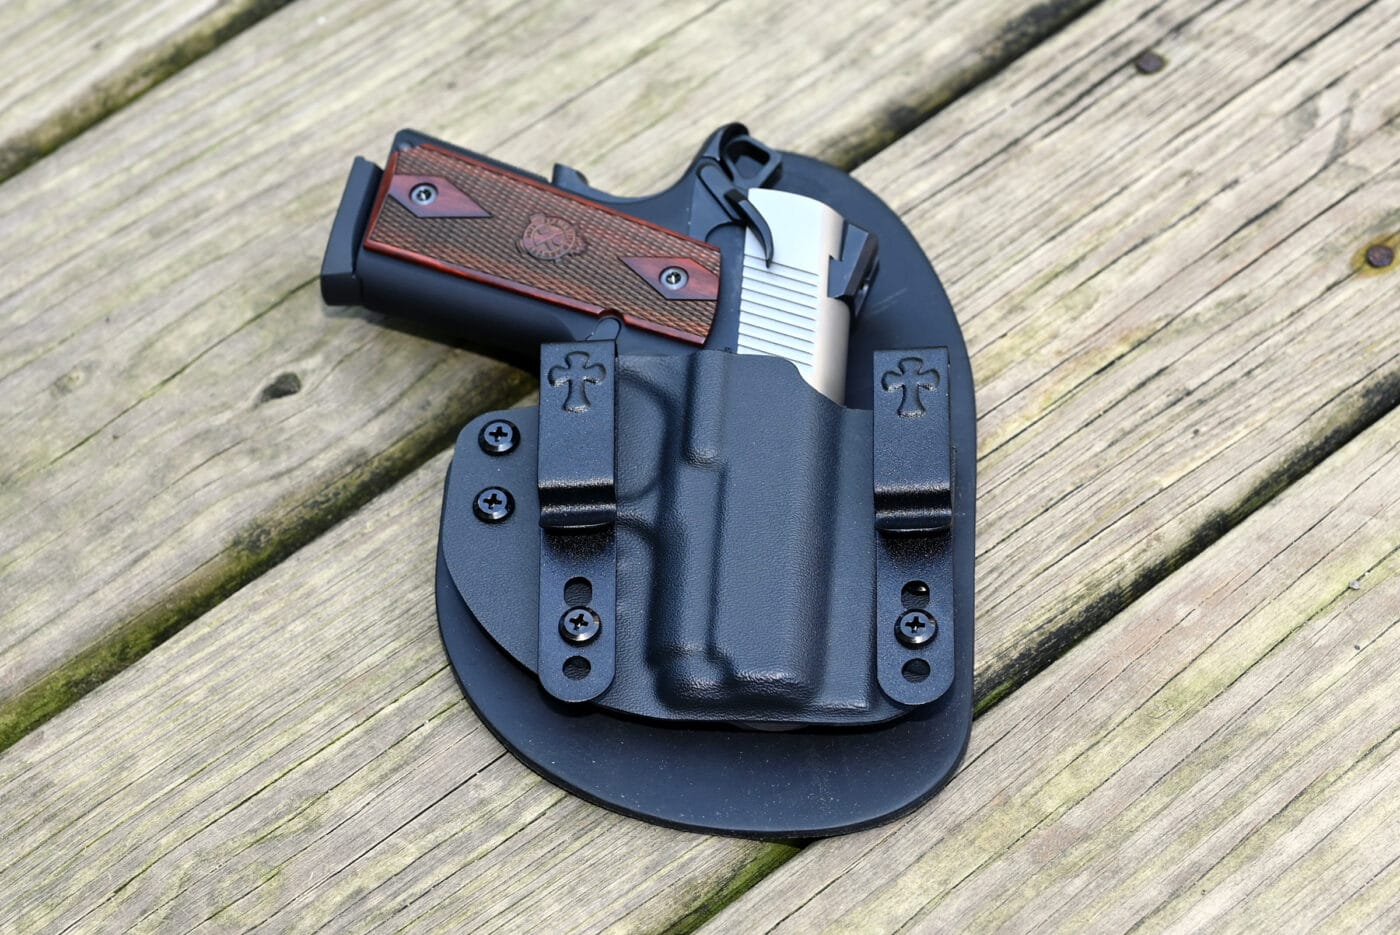 CrossBreed Reckoning holster with Springfield EMP pistol in it